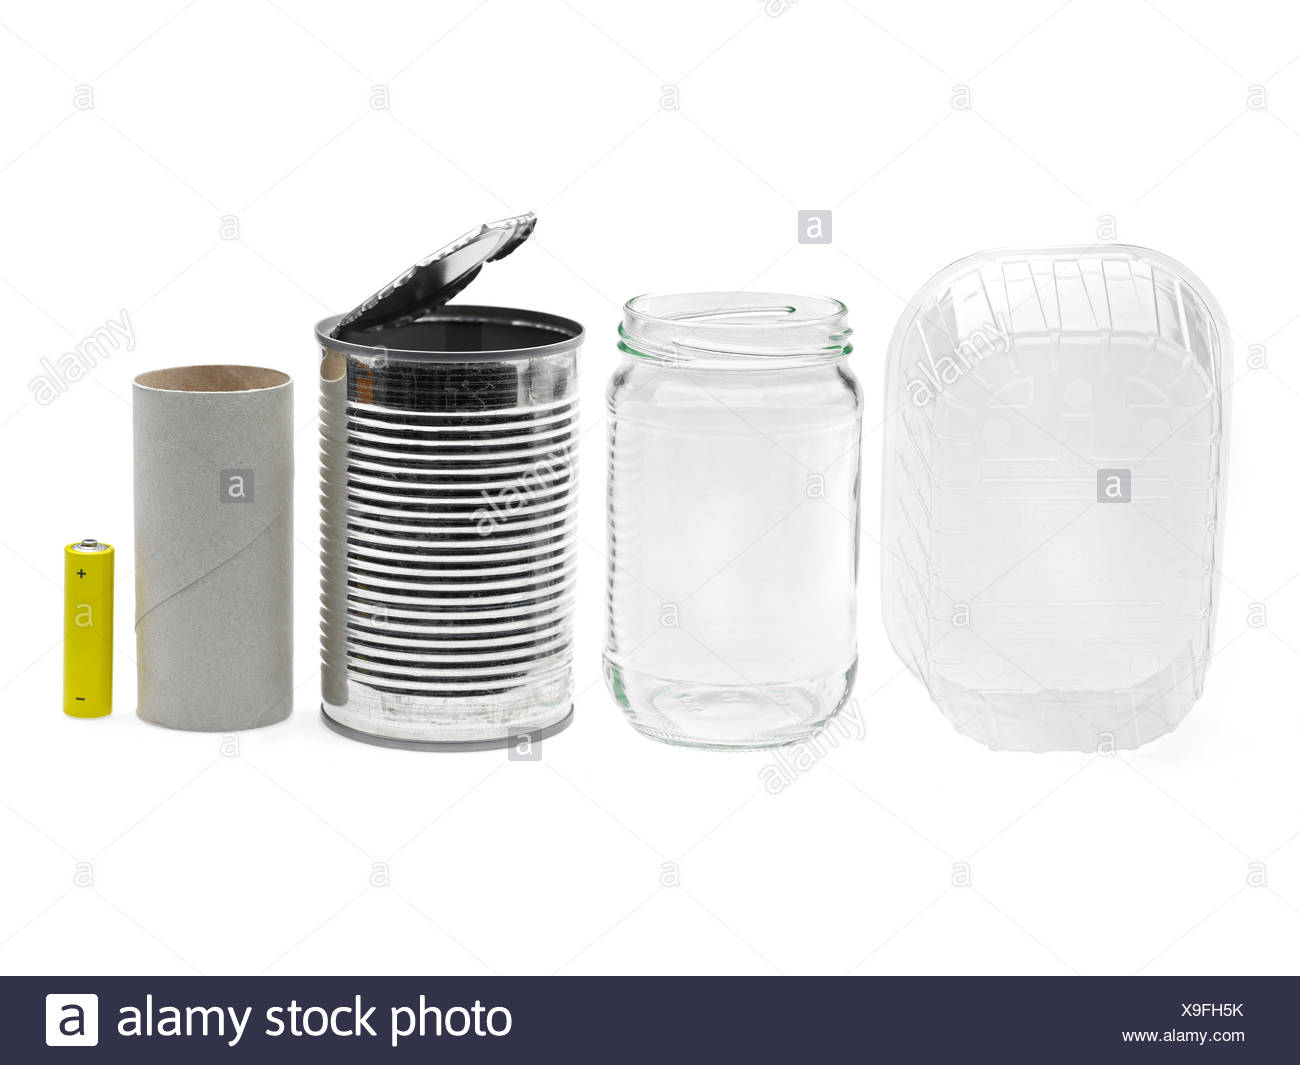 Close-up of tins and aluminum jars in a line against white background - Stock Image